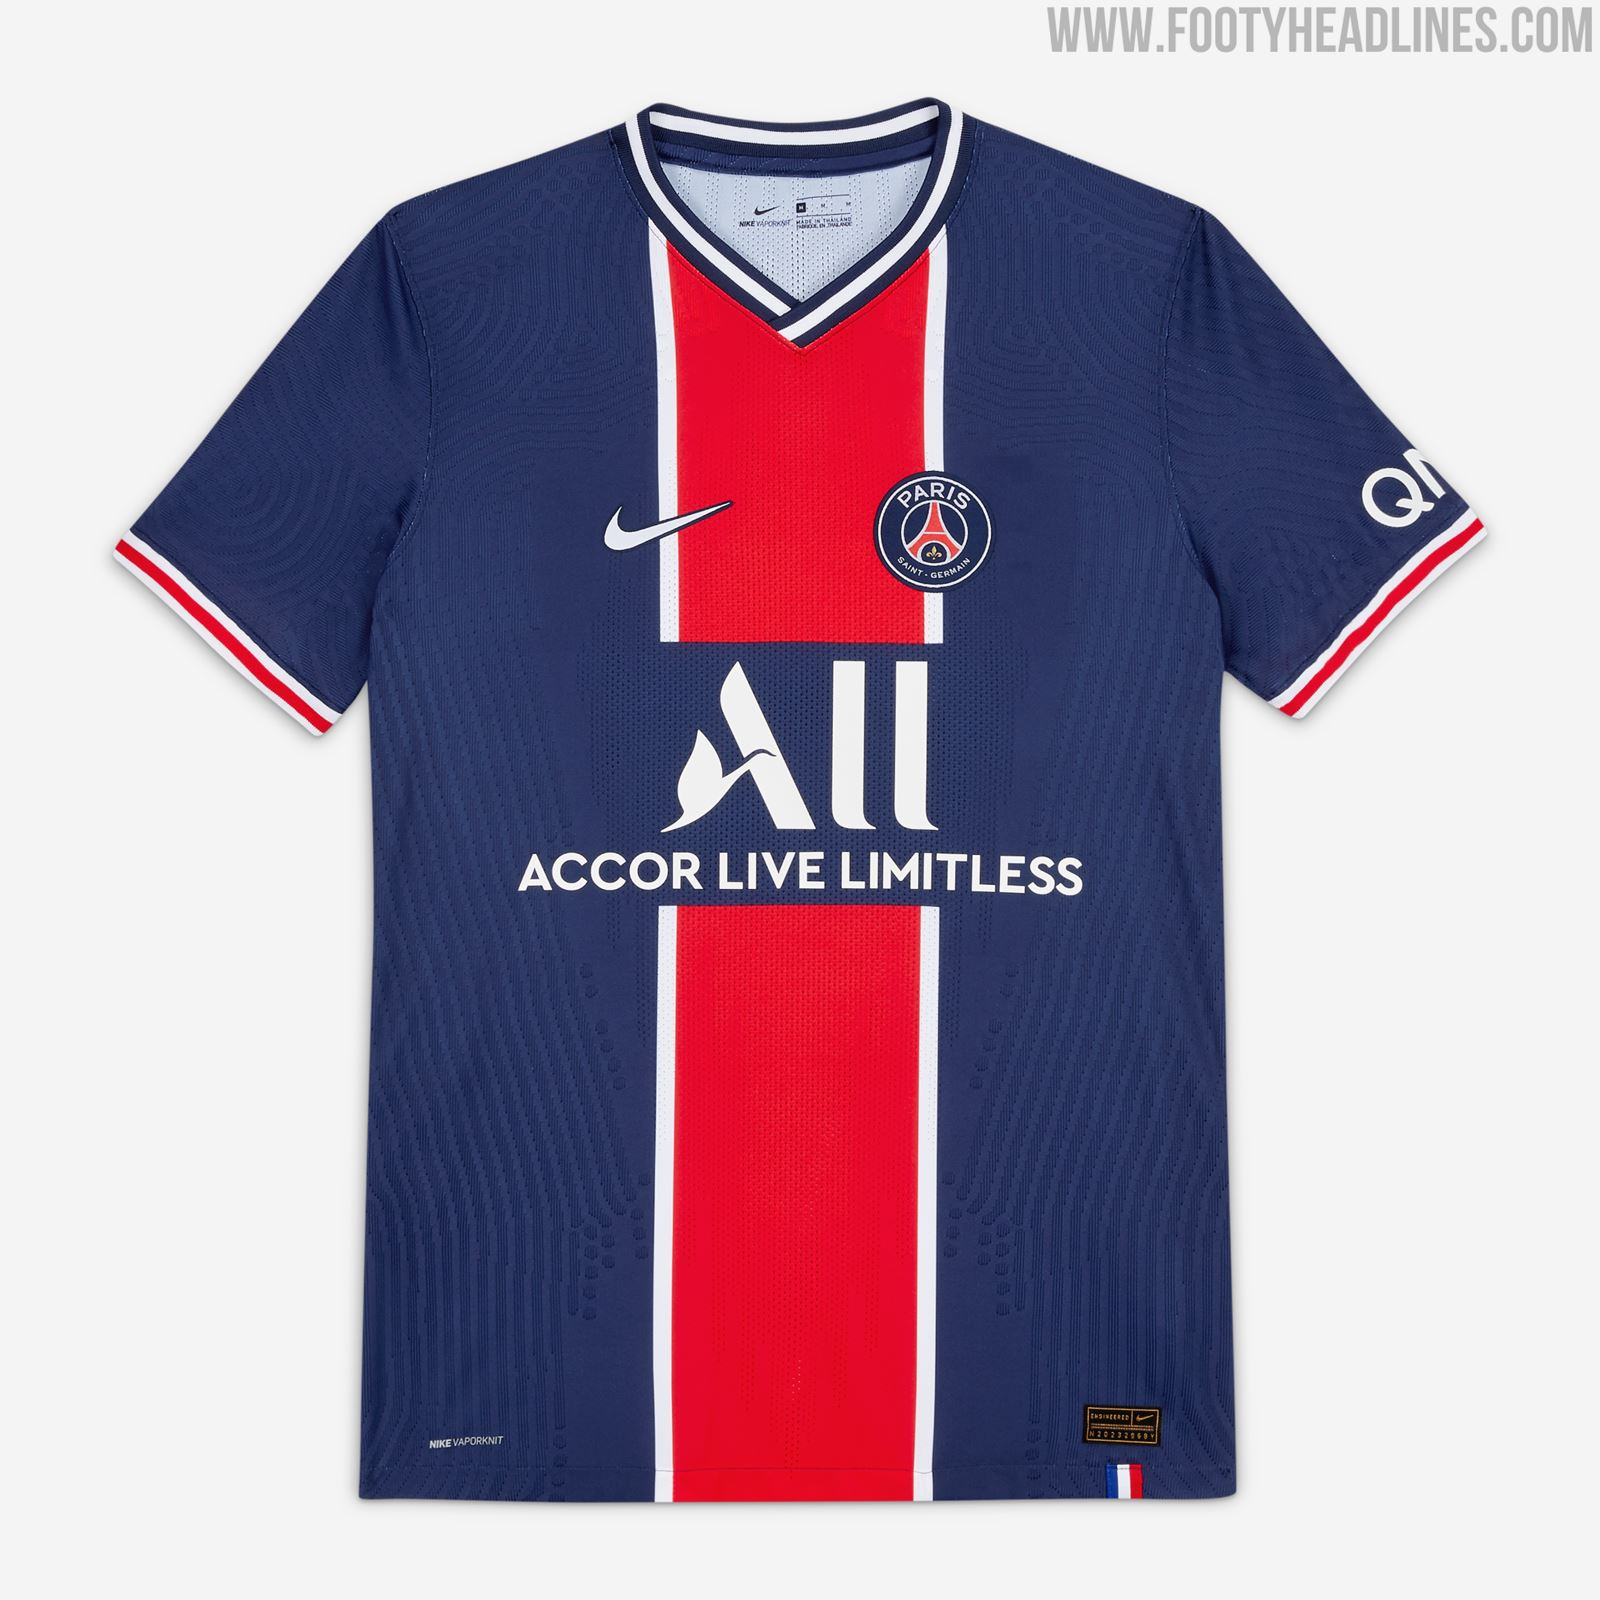 Nike Paris Saint Germain 20 21 Home Away Third Fourth Kits Release Dates Leaked Footy Headlines